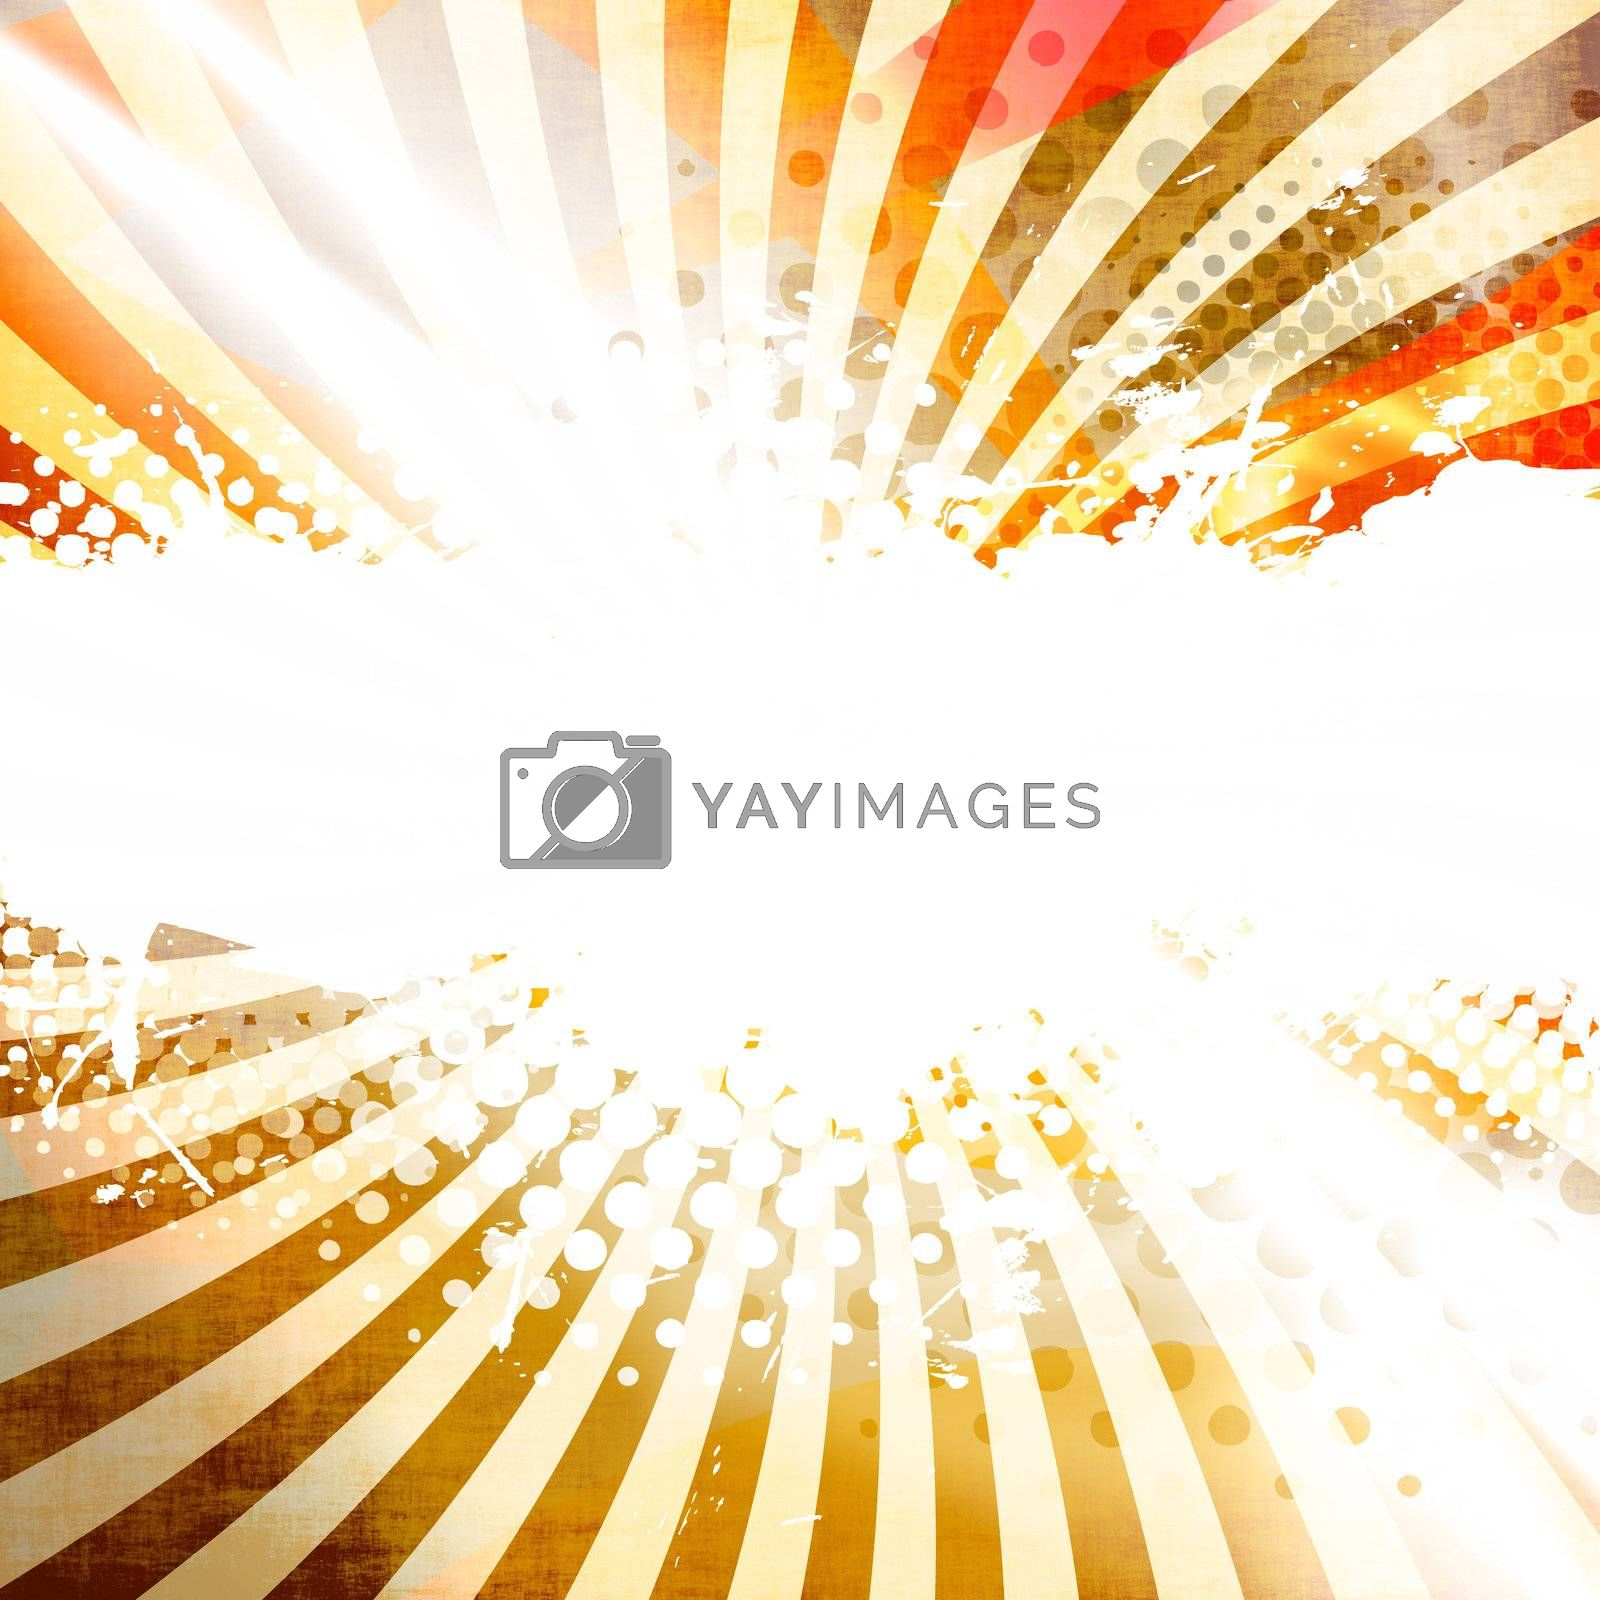 A golden abstract background layout with halftone dots and negative space.